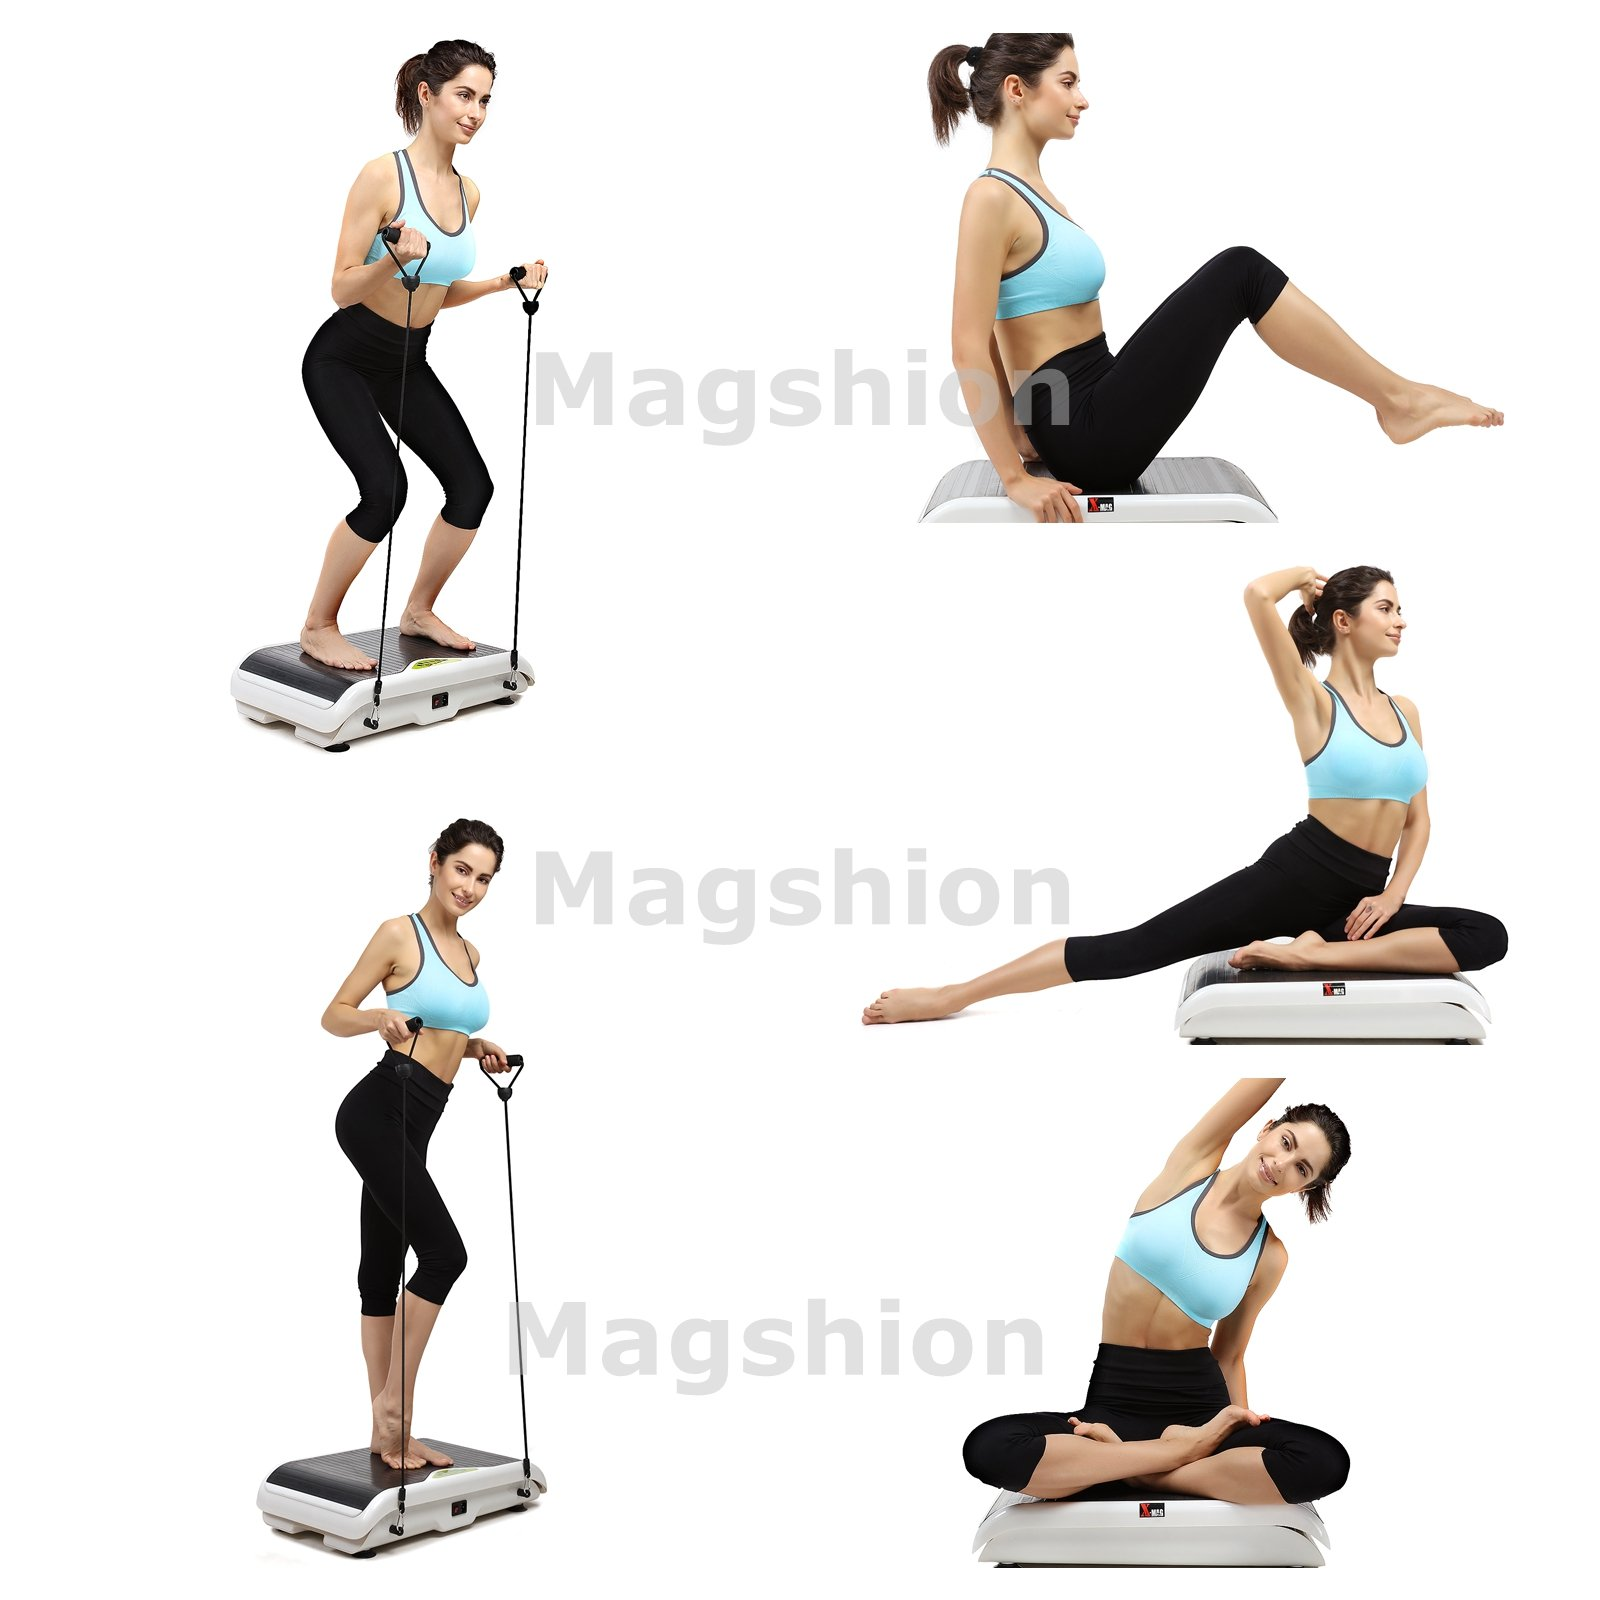 X-MAG Portable Whole Body Vibration Fitness Trainer Platform Machine with Straps, White by X-MAG (Image #7)